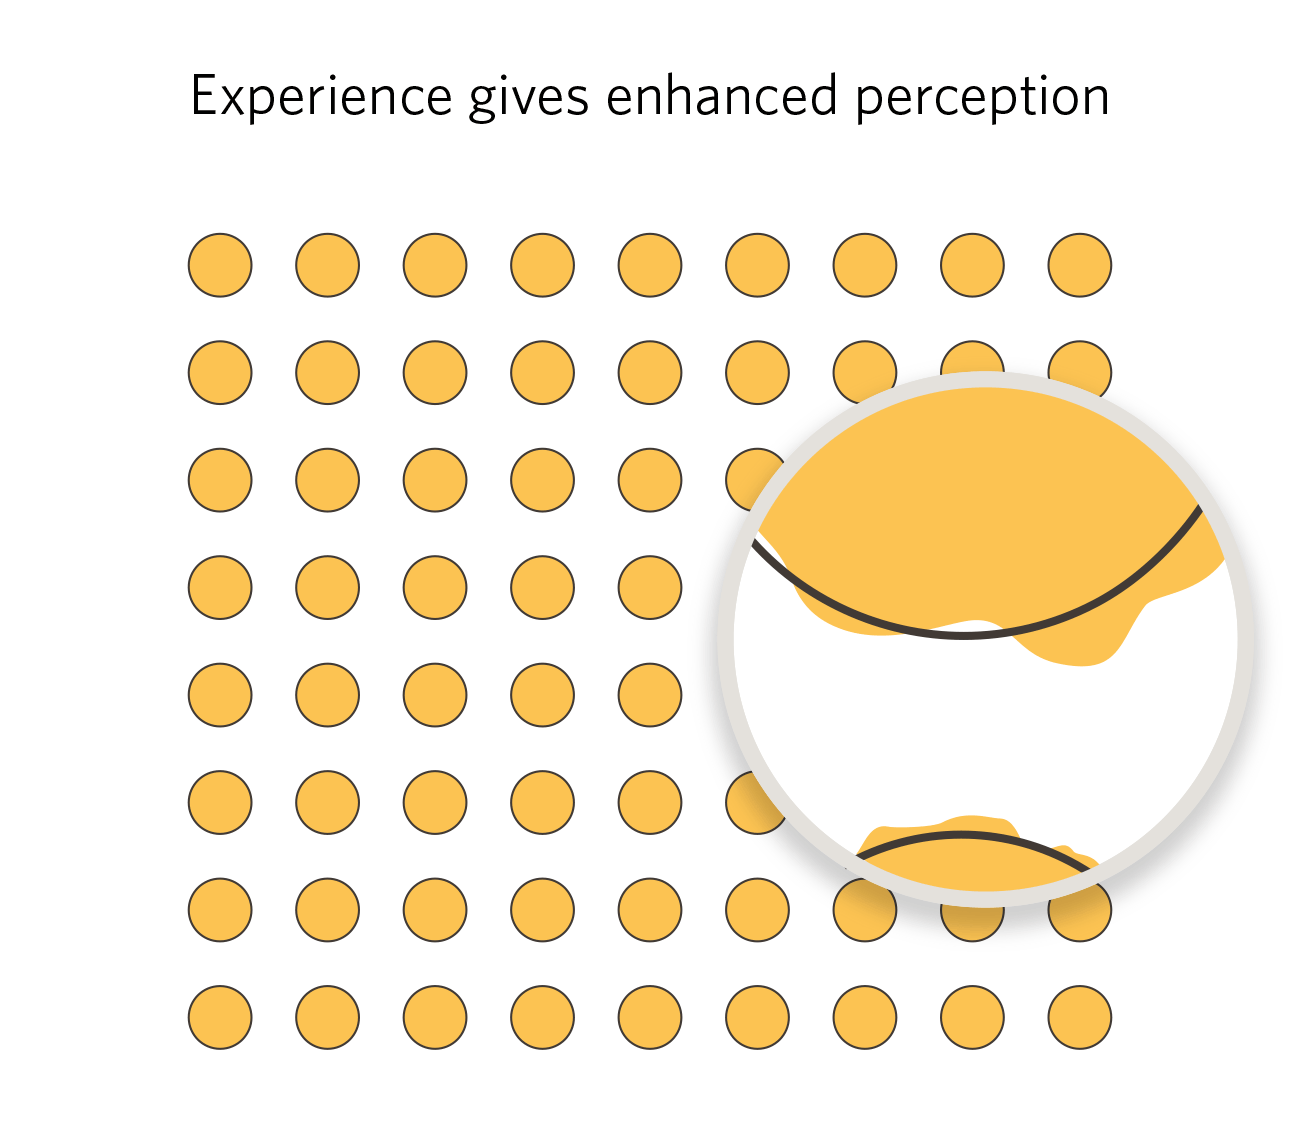 Enhanced perception